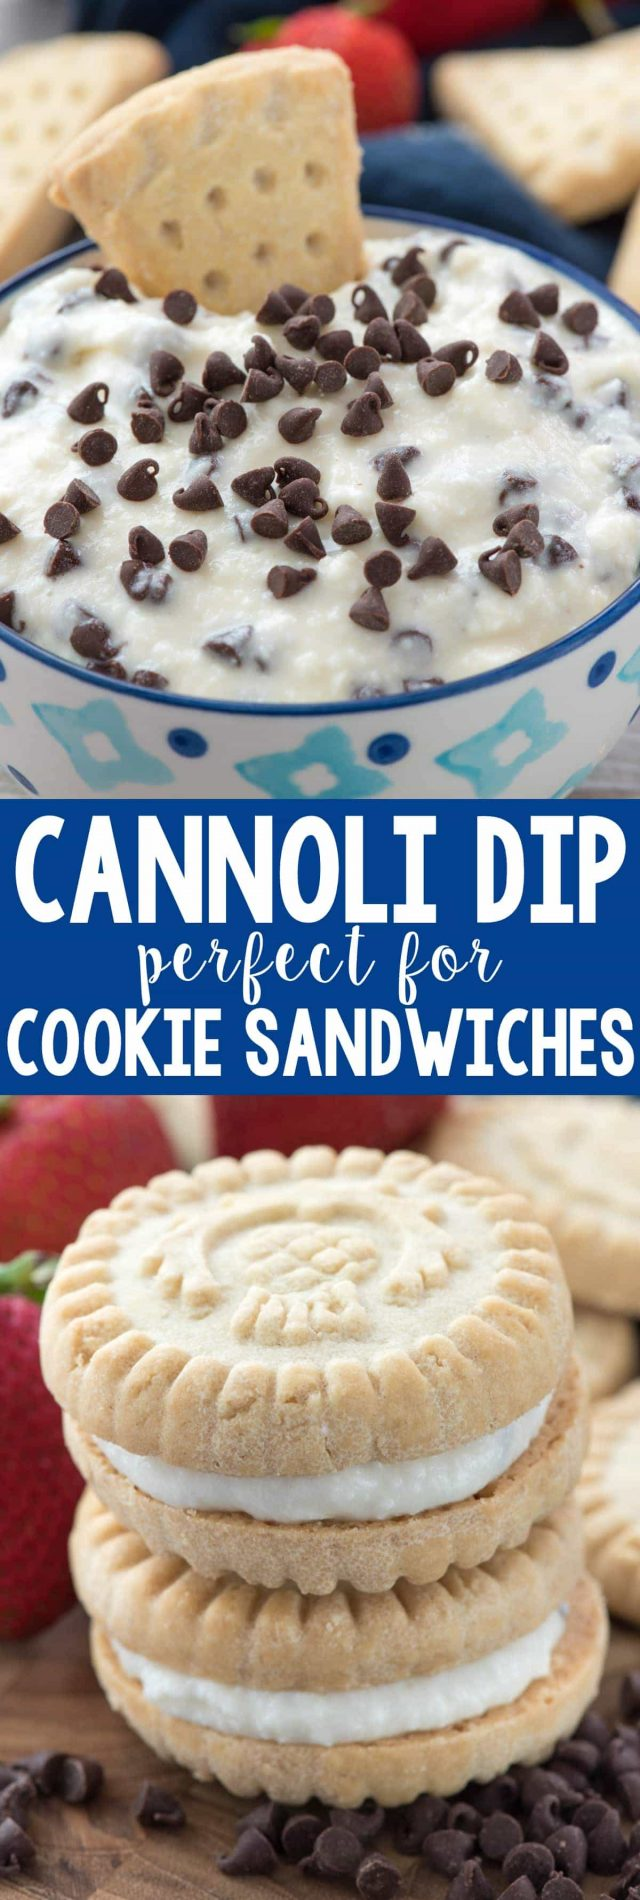 Cannoli Cream Dip - this easy dip recipe tastes just like the inside of a cannoli! Dip cookies in it or use it as a sandwich cookie filling. It's the perfect no bake summer recipe!